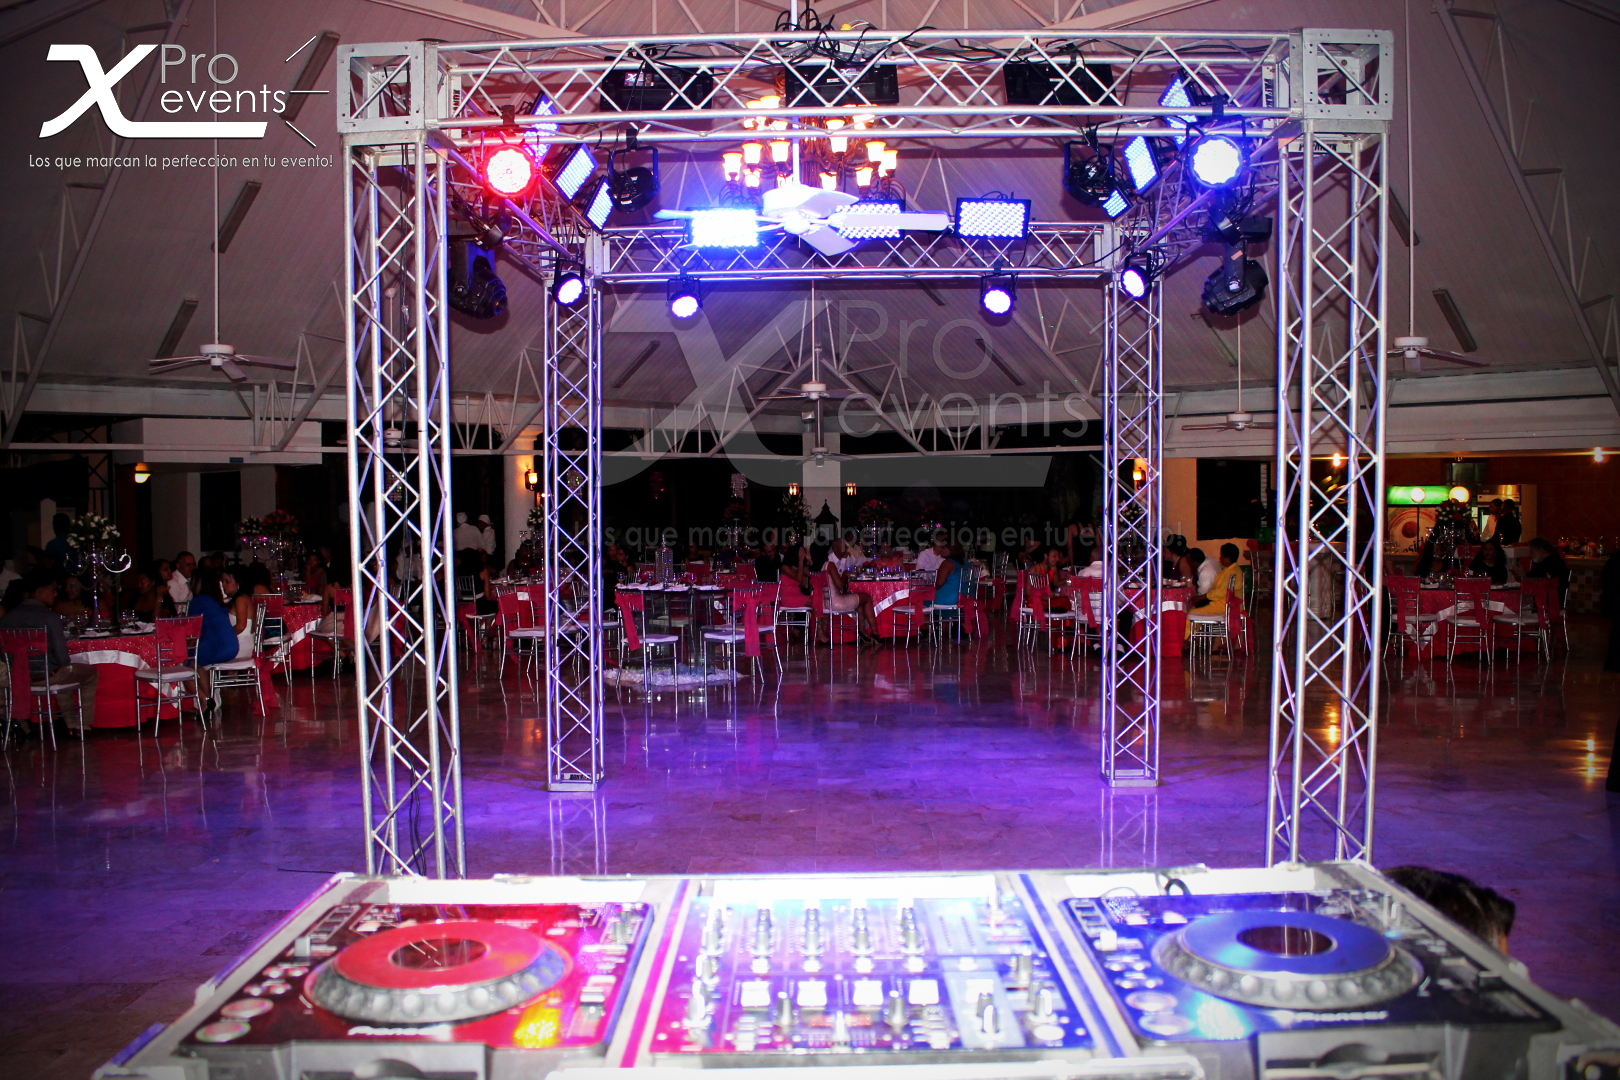 www.Xproevents.com - Platos para Dj & Techo Truss con luces LED y moviles inteli